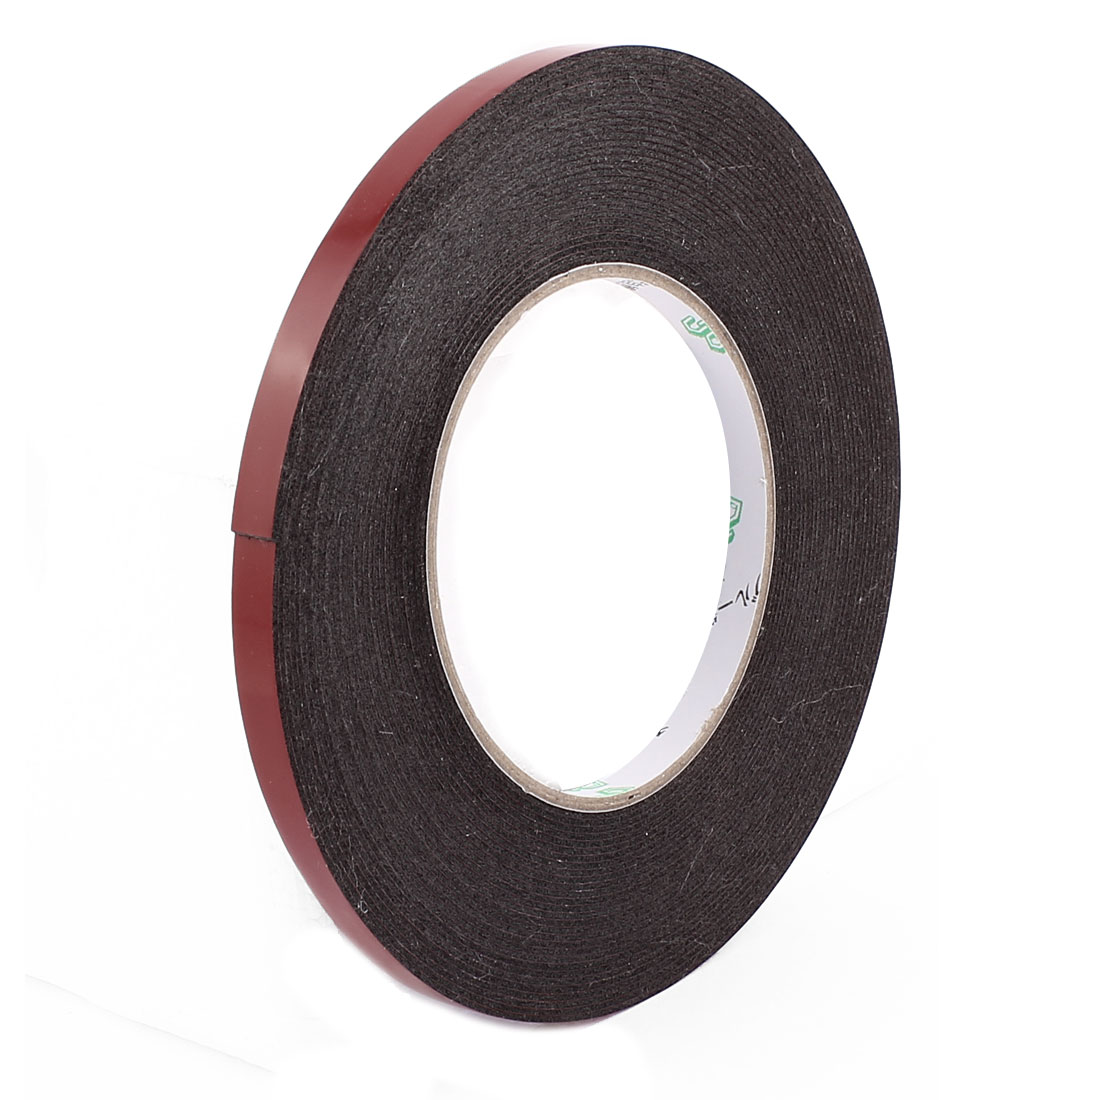 0.8CM Width 10M Length 1MM Thick Dual Sided Sealing Shockproof Sponge Tape Black